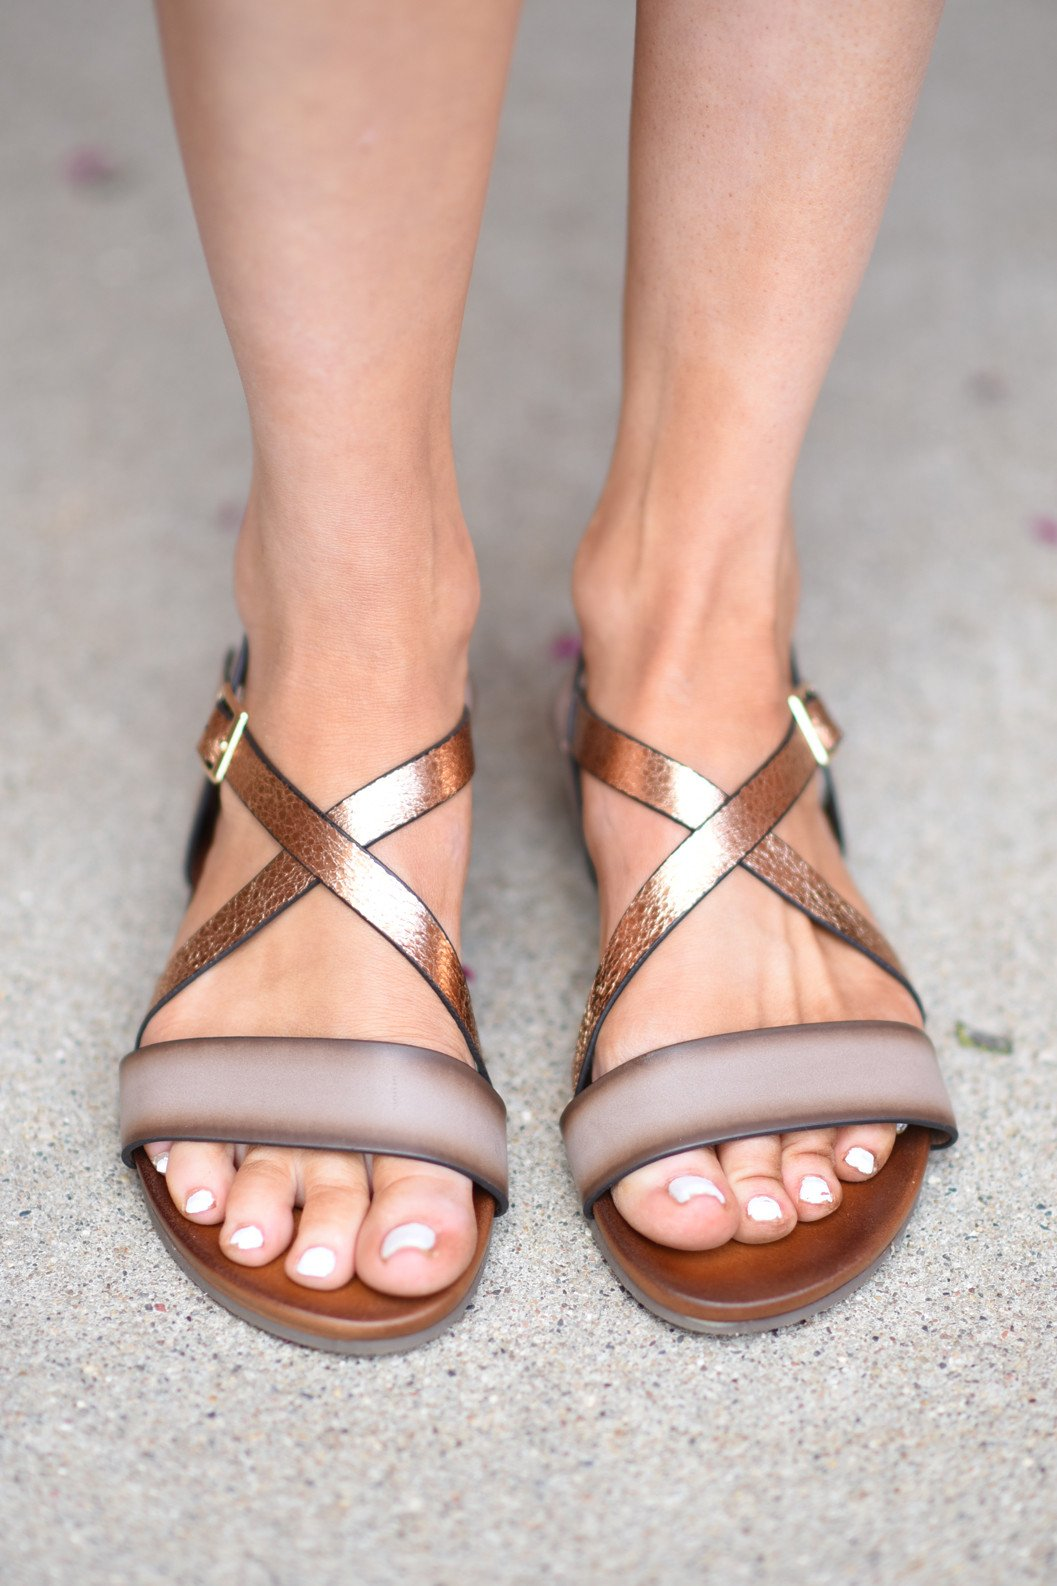 Not Rated Sandals - Novara Taupe